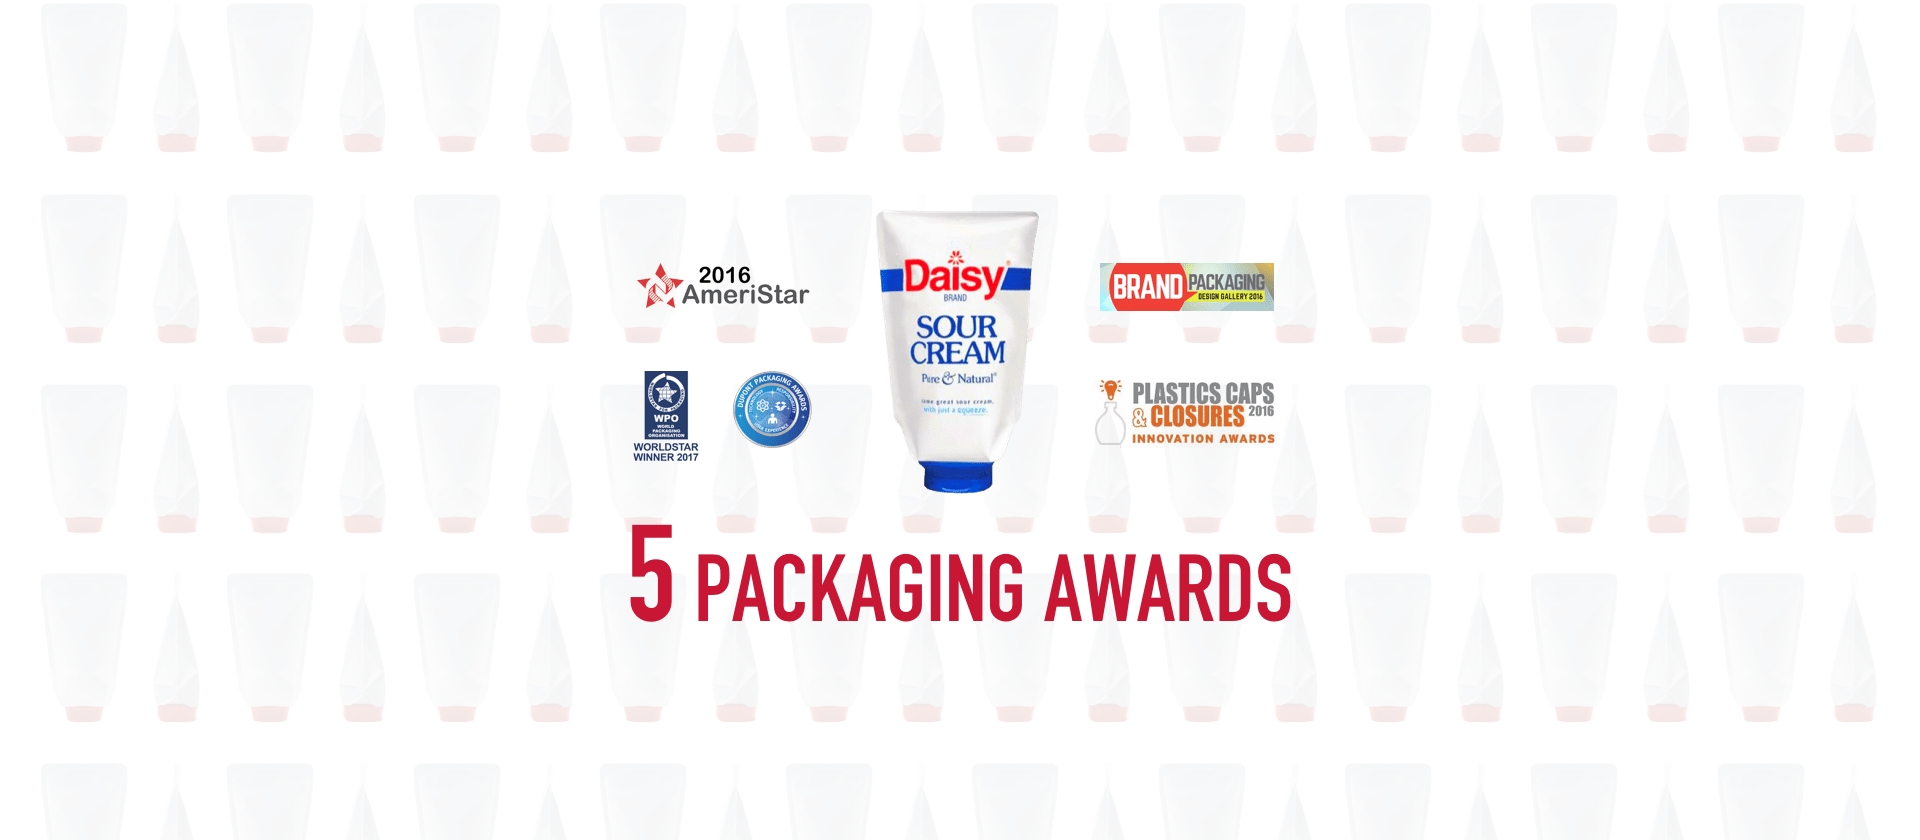 Daisy Squeeze Sour Cream packaging awards